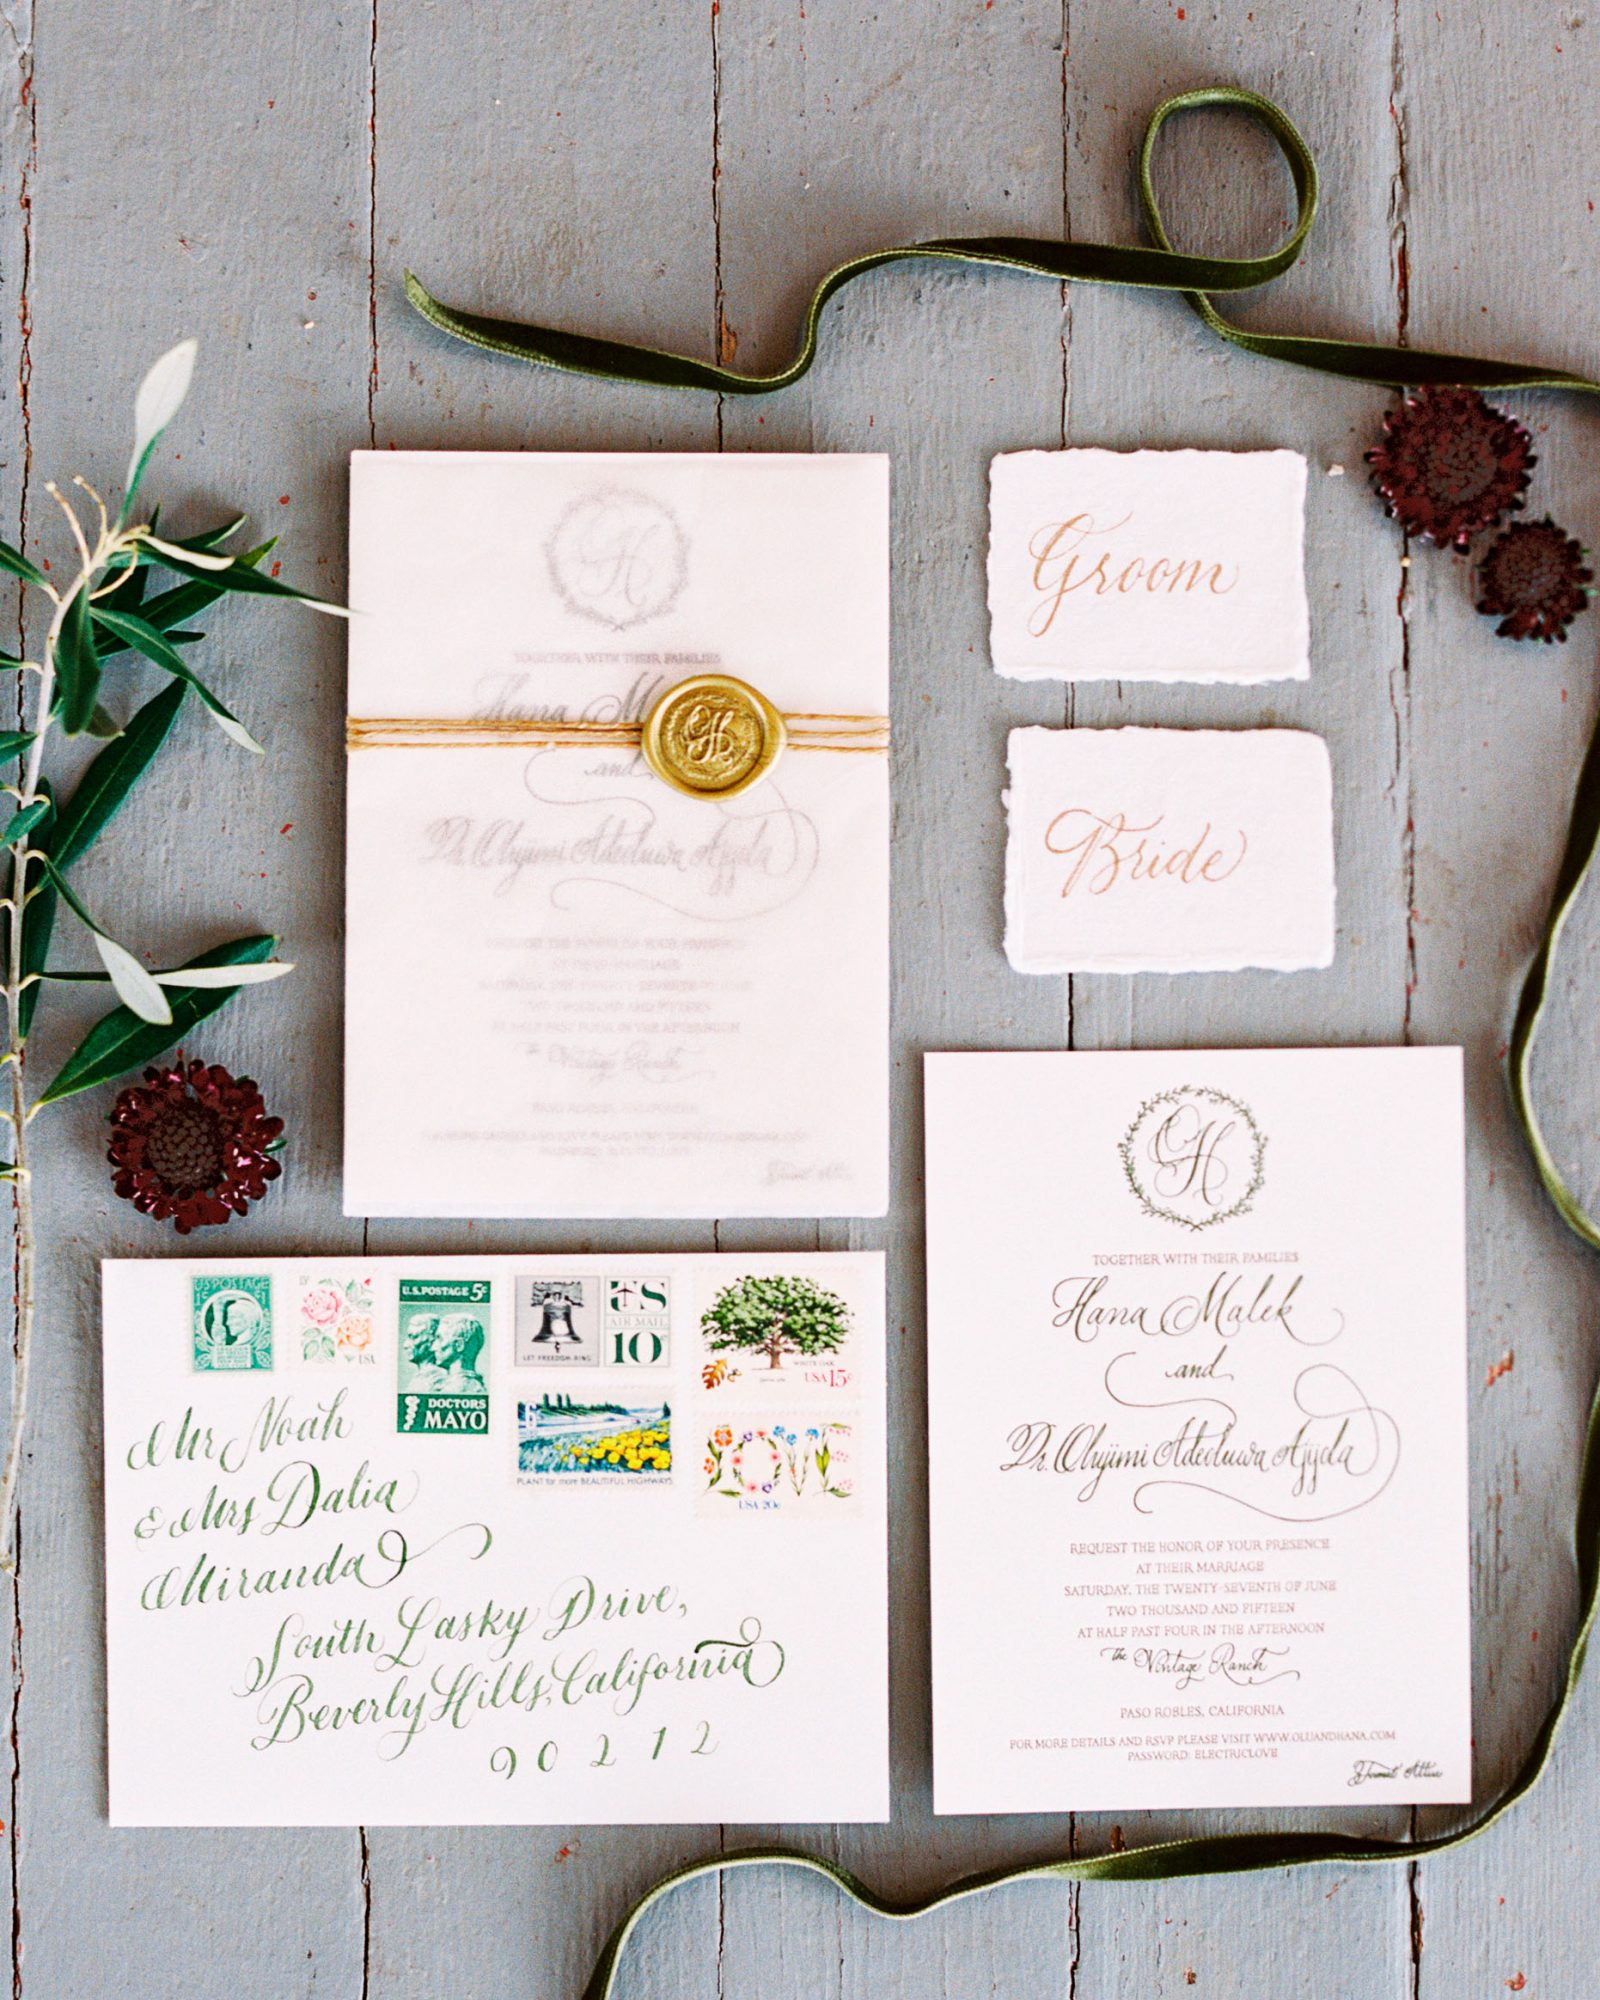 hana olu wedding california stationery